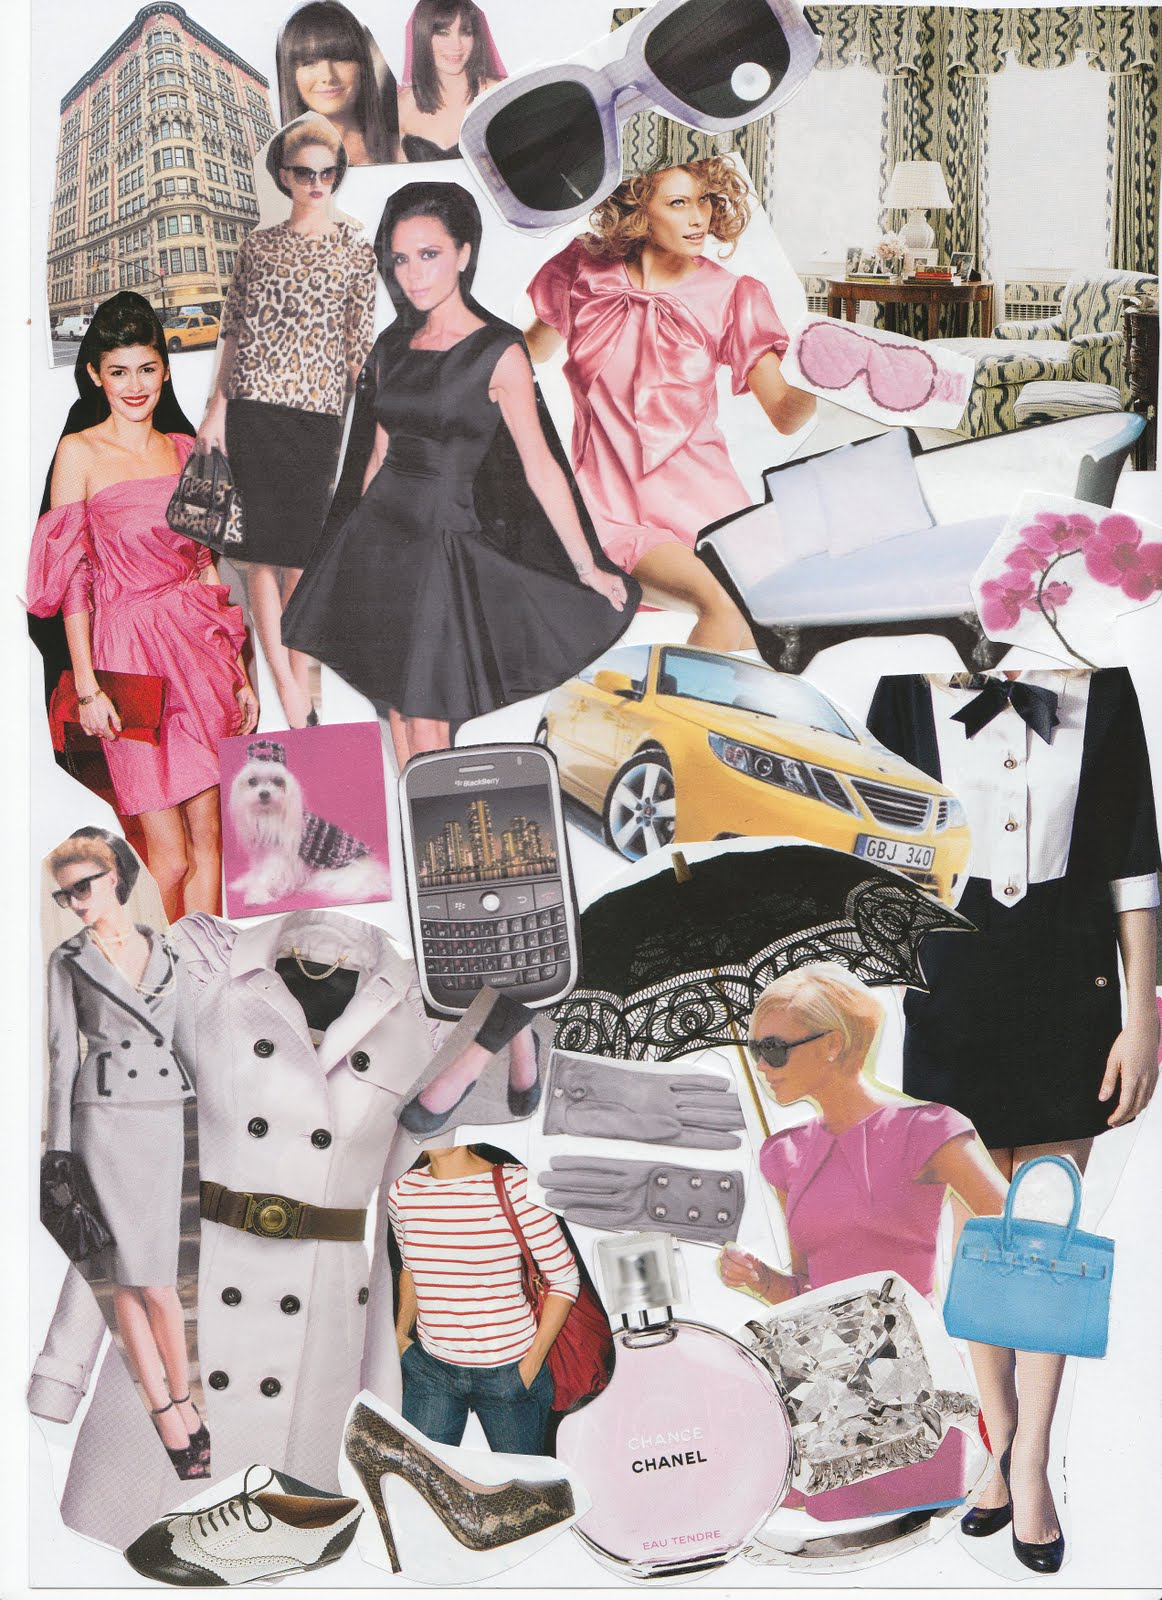 http://1.bp.blogspot.com/_DYp-vmPdcrc/S_pM5n0ipUI/AAAAAAAAAHg/8LVX3UAtOlM/s1600/mood+board+holly+golightly.+jpg.jpg